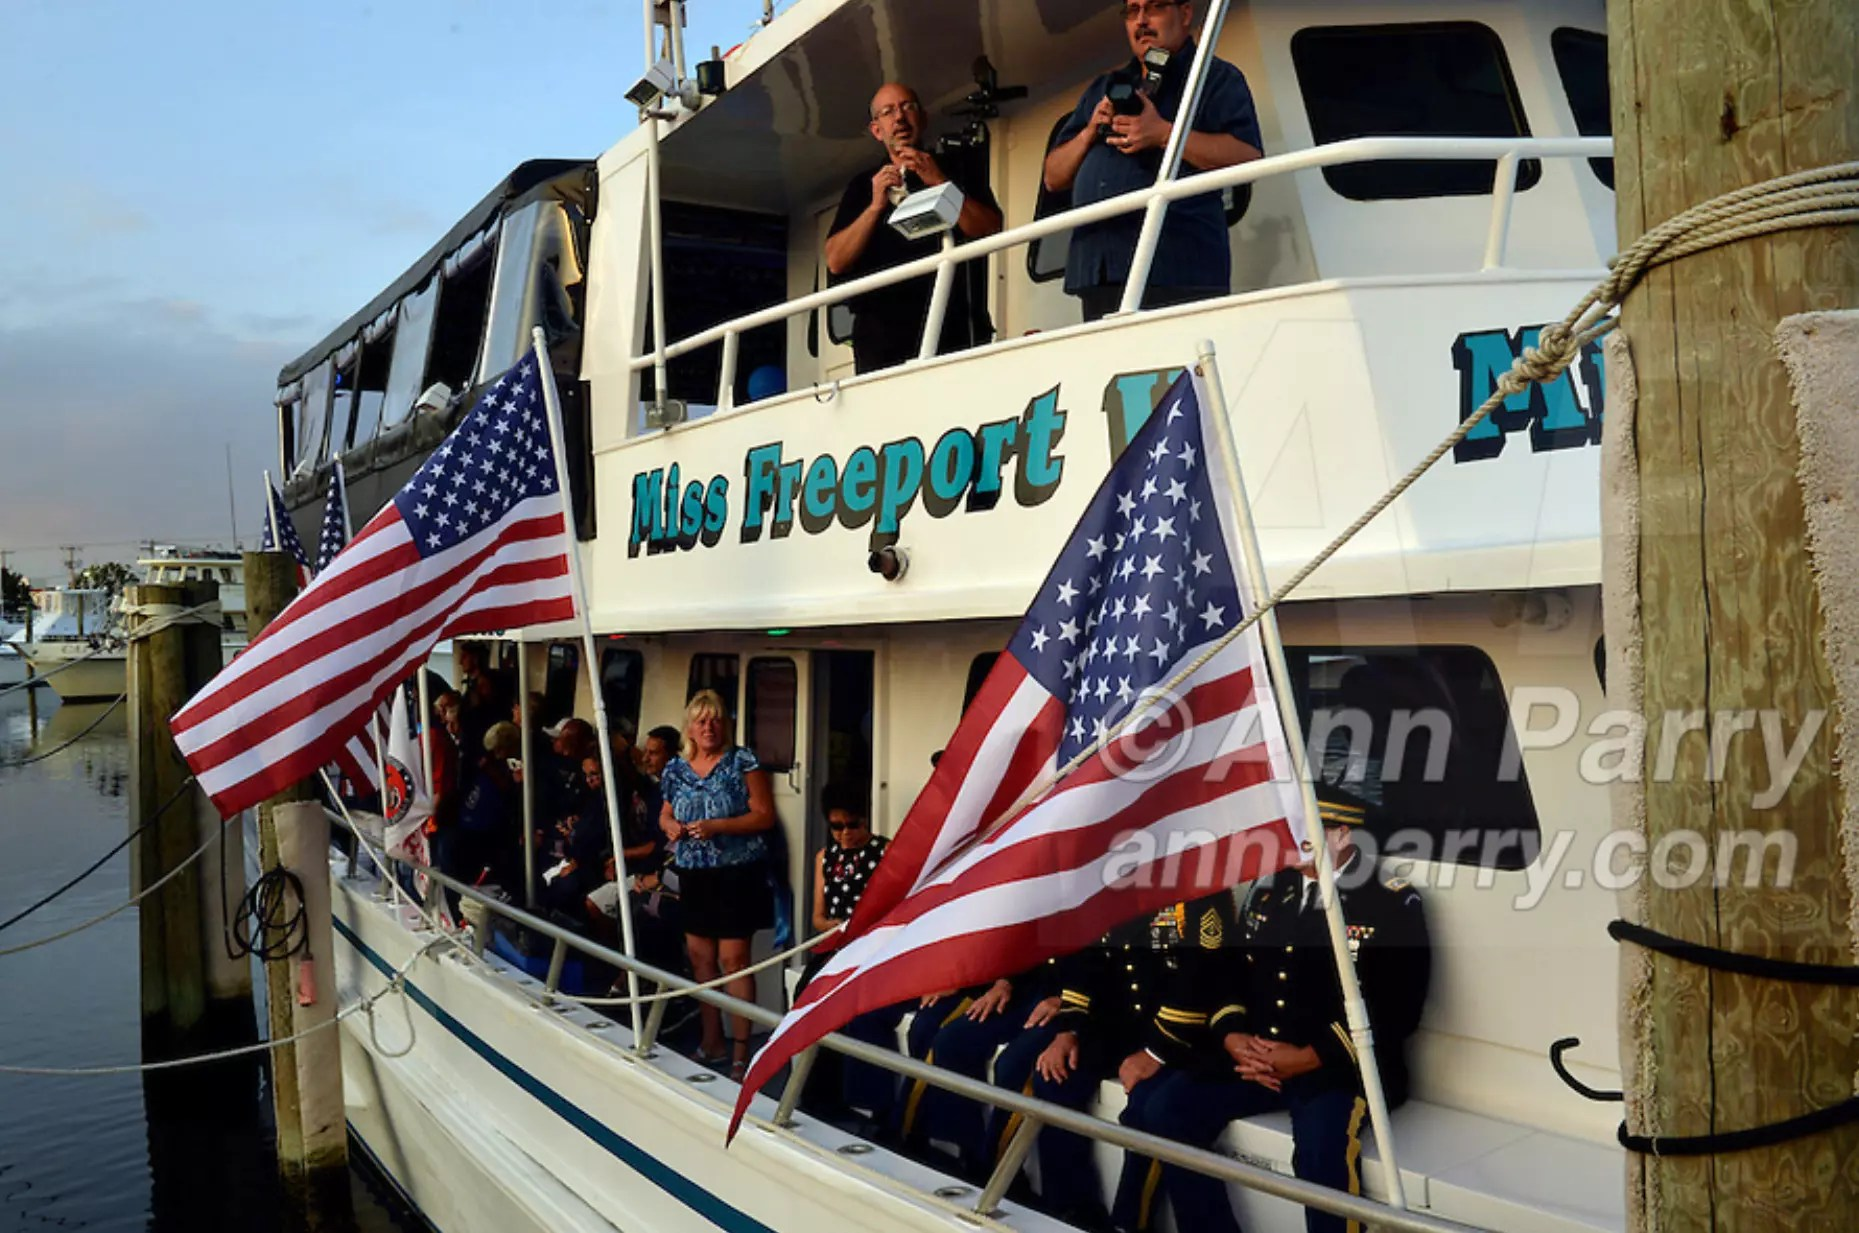 Freeport, NY, USA. 10th Sept. 2014. After a dockside remembrance ceremony in honor of victims of the terrorist attacks of September 11 2001, on Freeport's Nautical Mile, further ceremonies were held on board the boat Miss Freeport V, which sailed from the Woodcleft Canal on the South Shore of Long Island, on the eve of the 13th Anniversary of the 9/11 attacks.